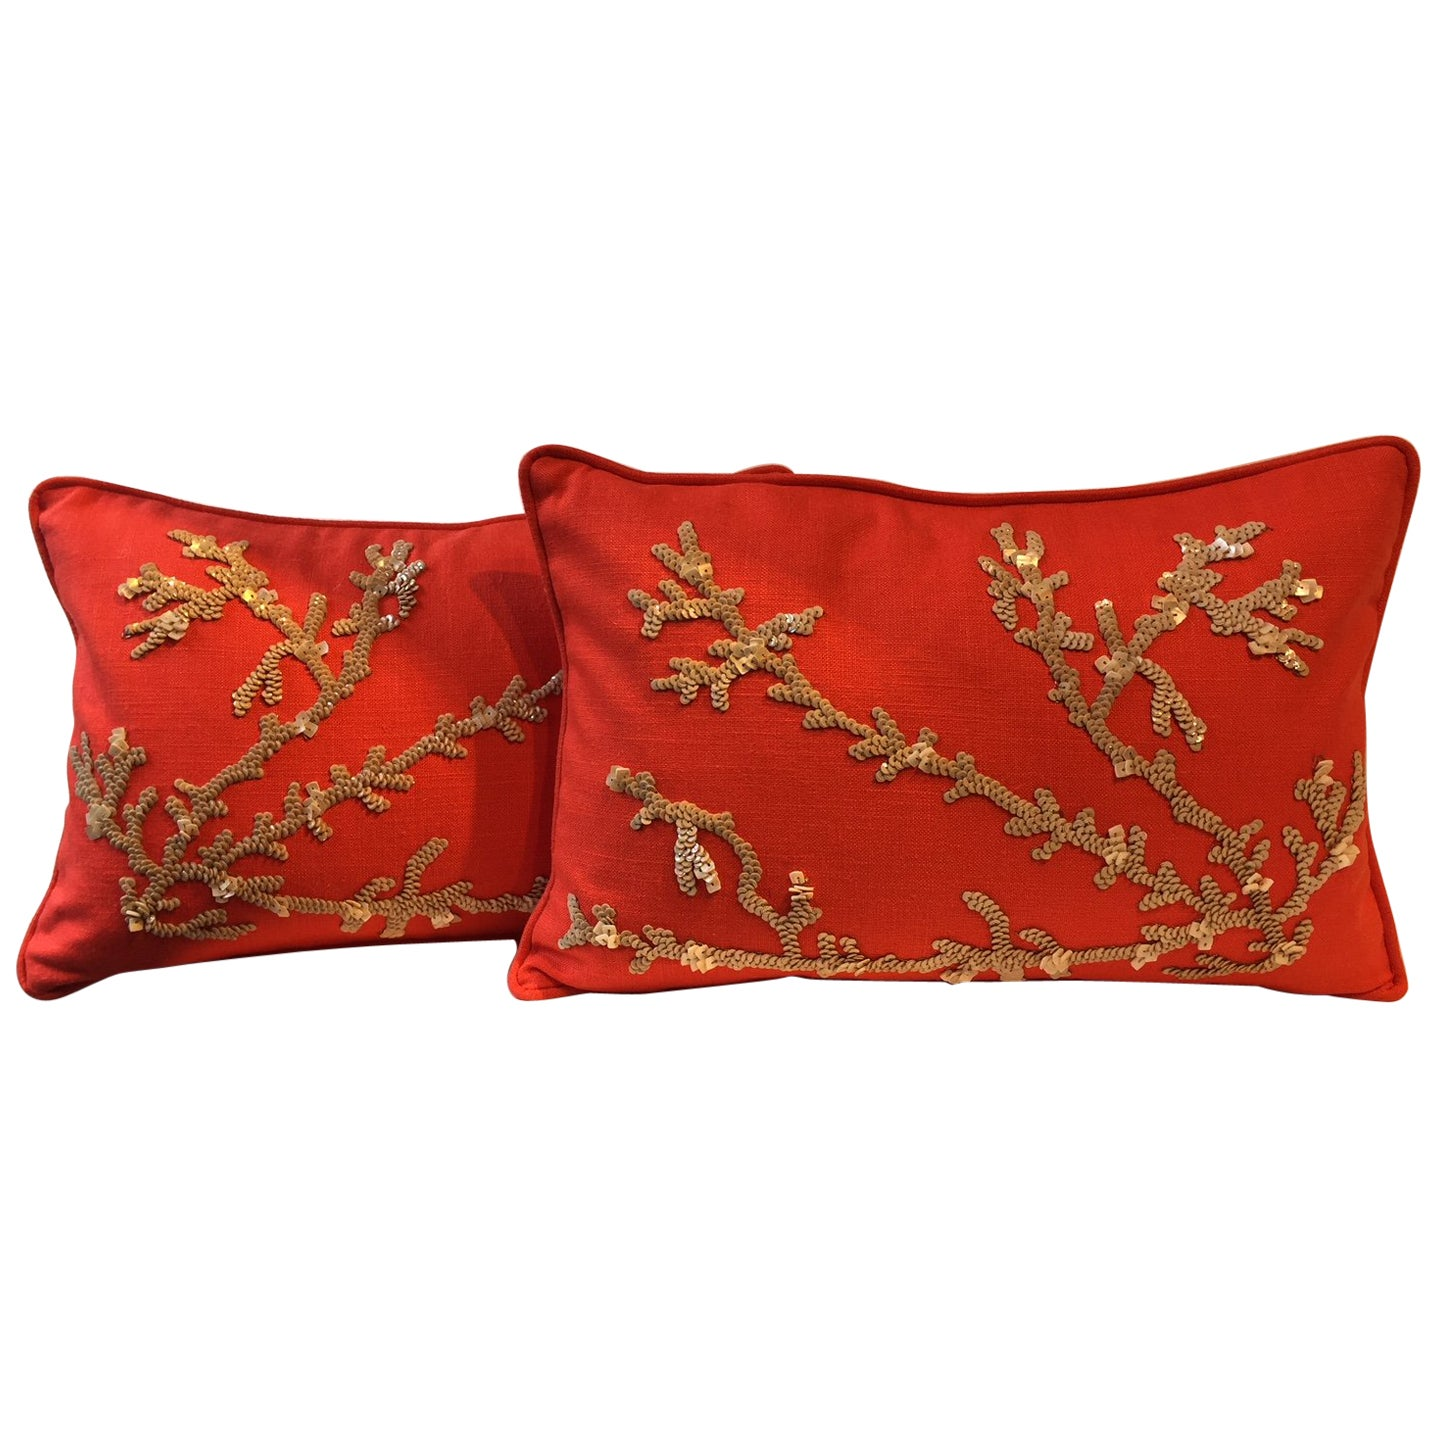 Set of Hand Embroidered Coral Cushions on Linen Color Coral Red